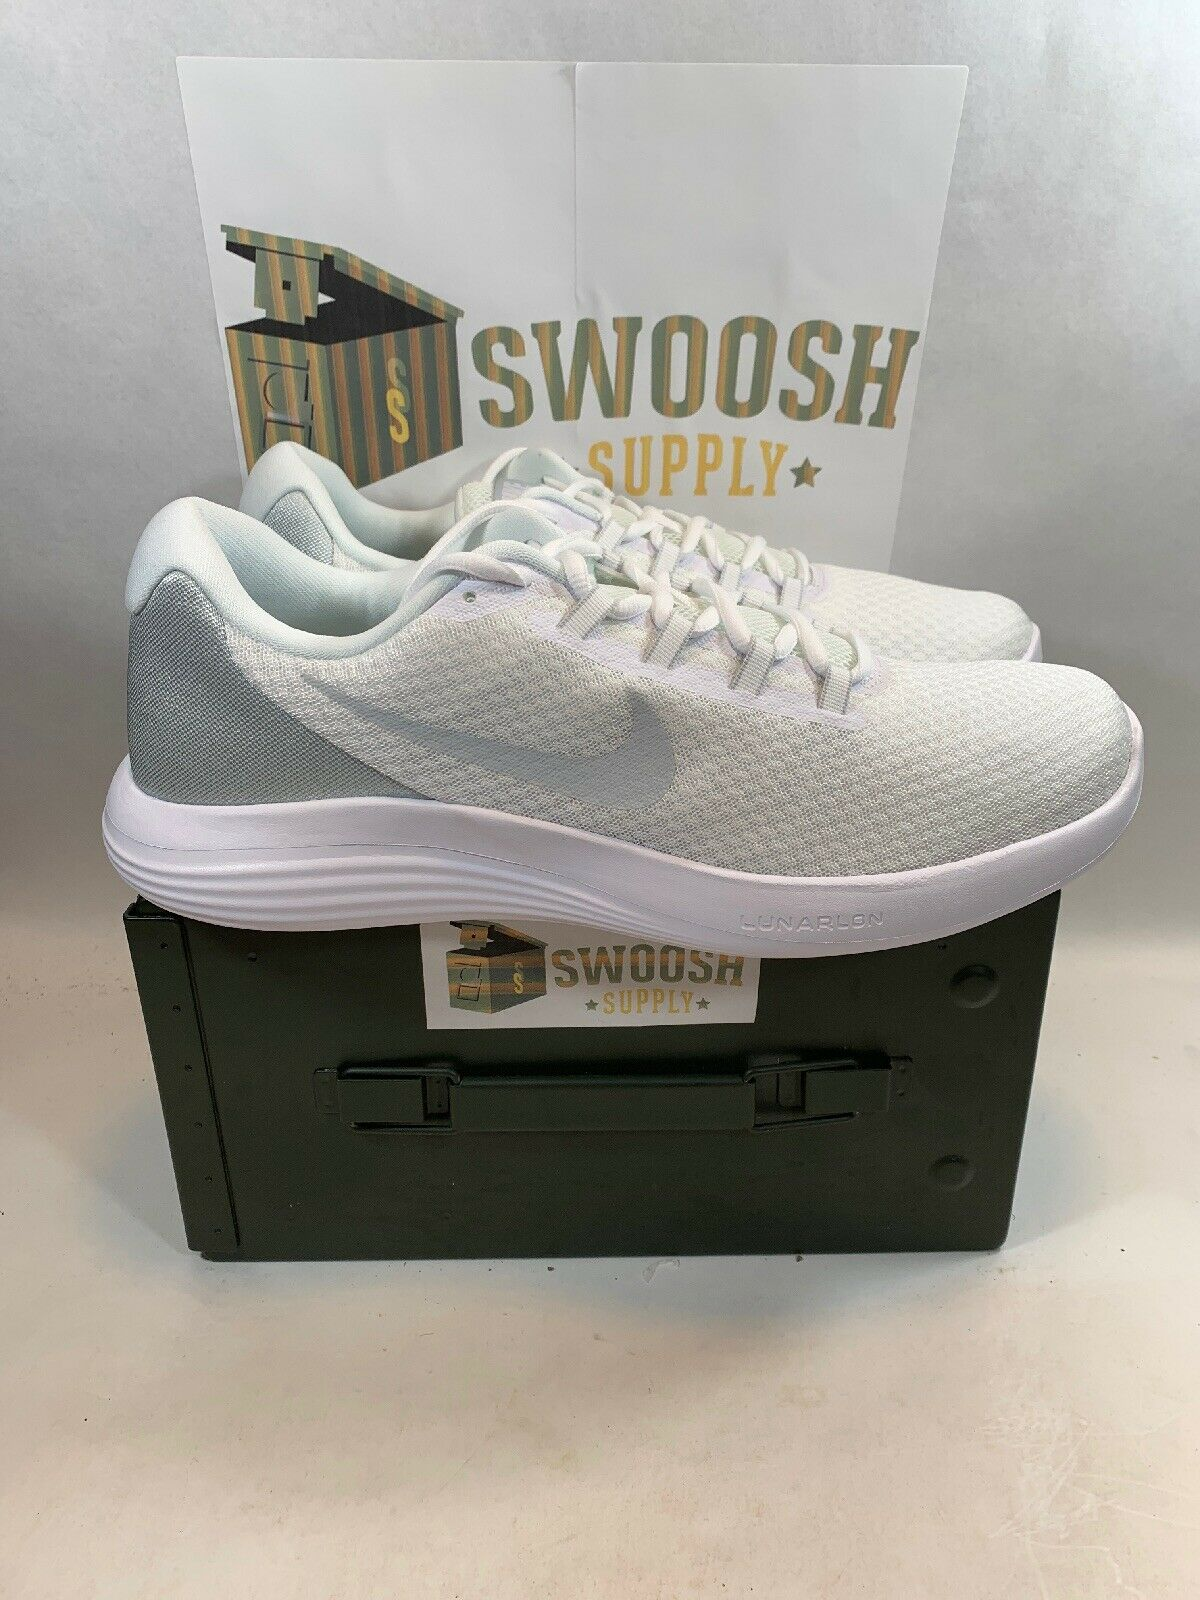 Nike Lunarconverge White Platinum 852462-100 Running shoes Size 13